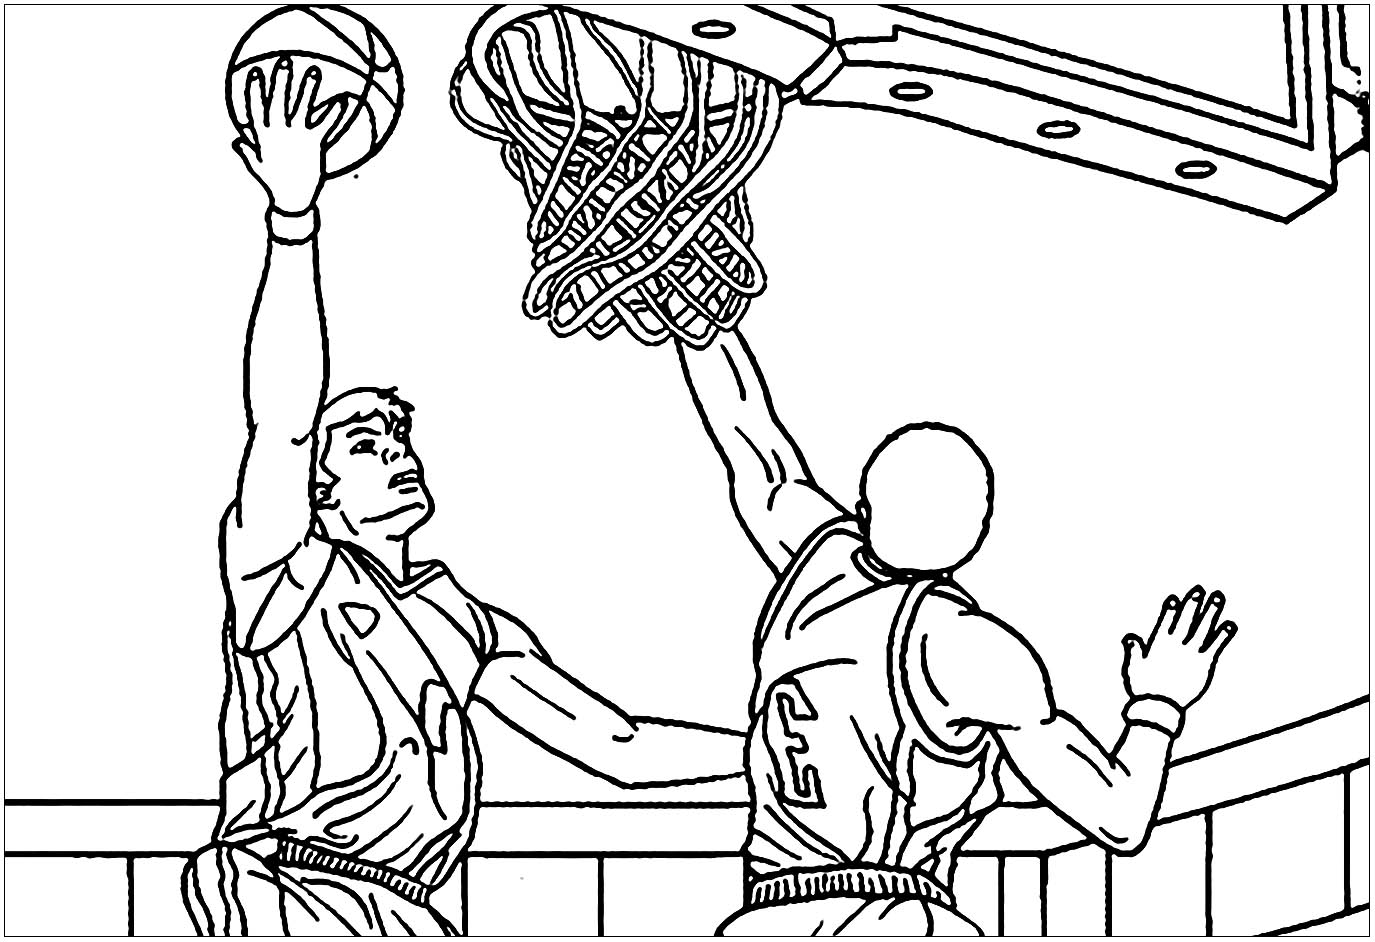 Basketball coloring page to download